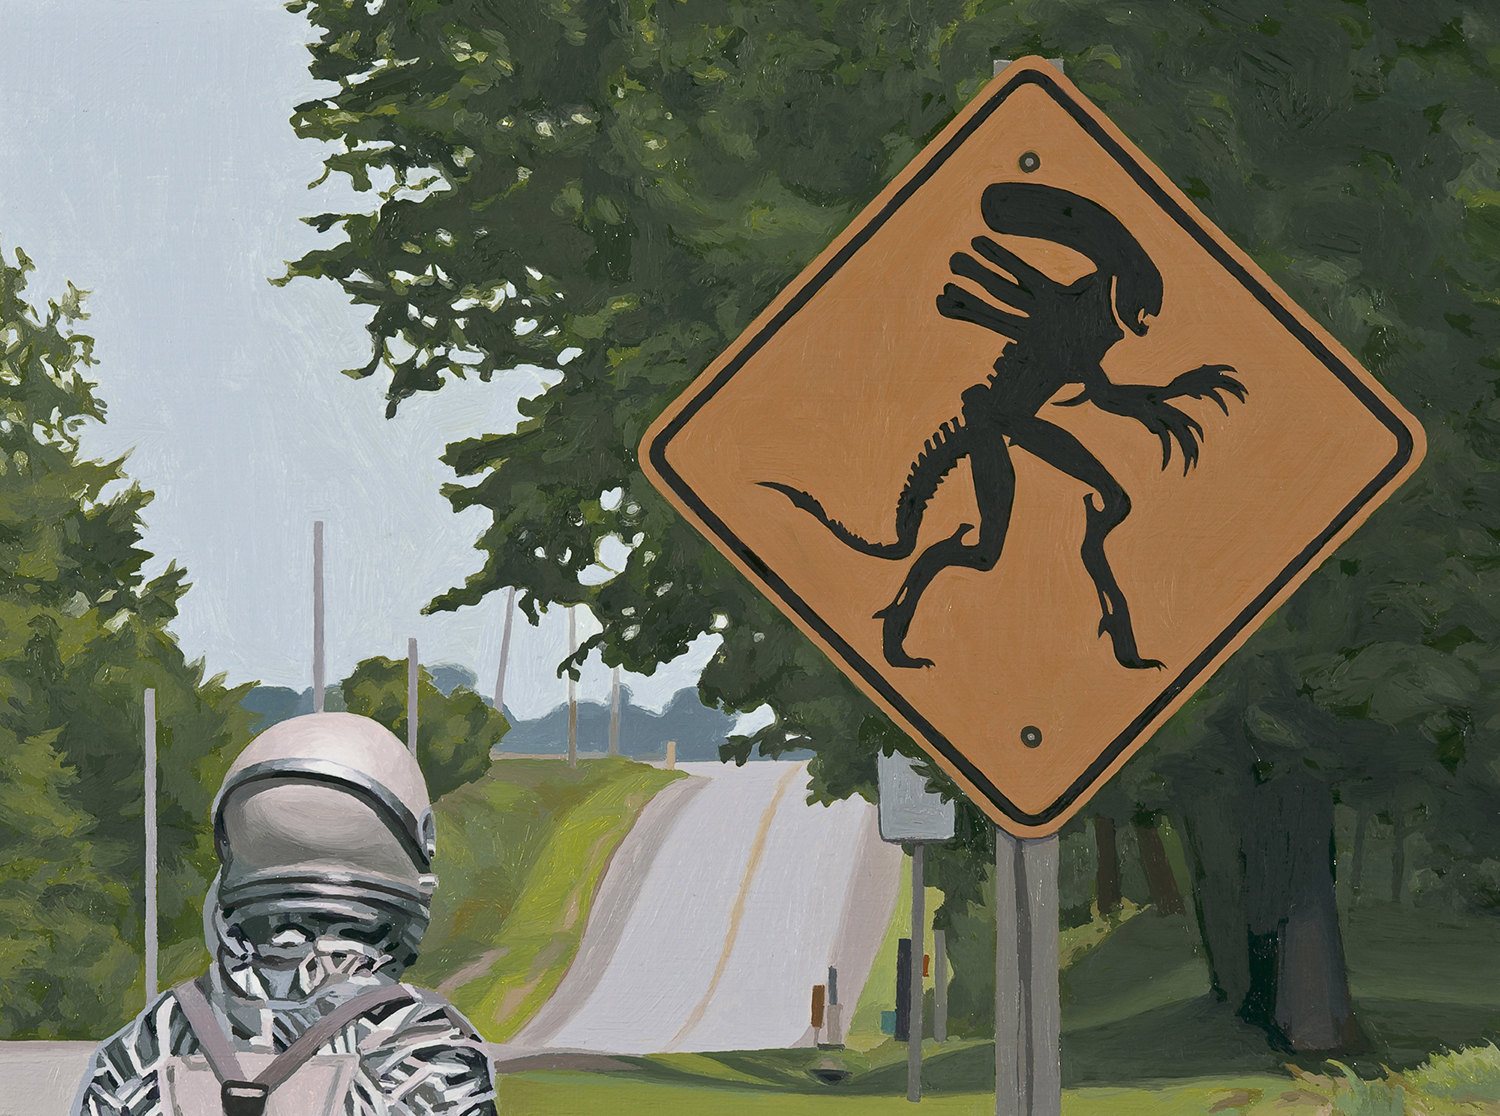 alien crossing, astronaut looking at street sign